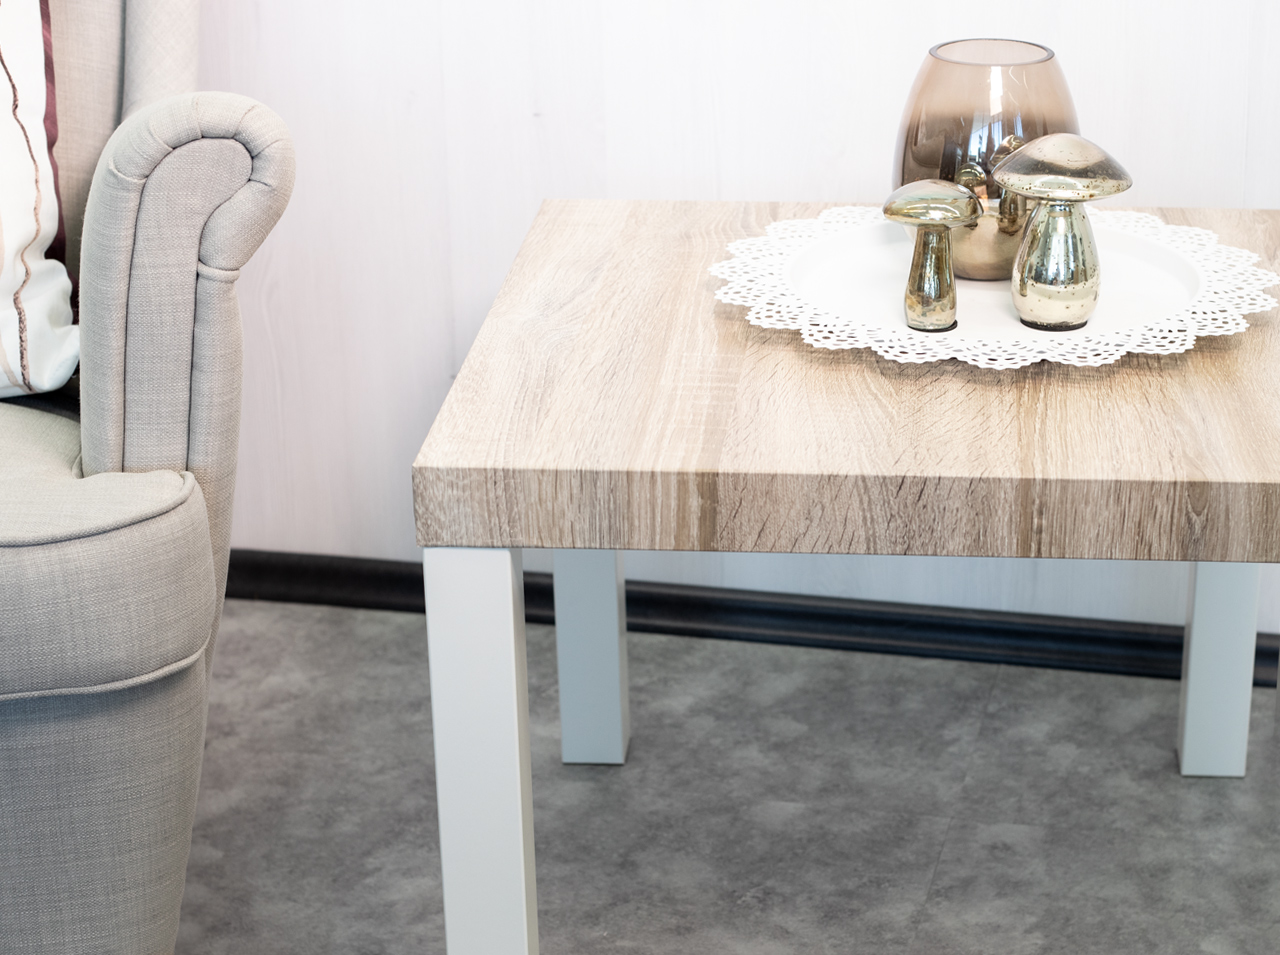 d-c-home   A rustic wooden look for your living room furniture!